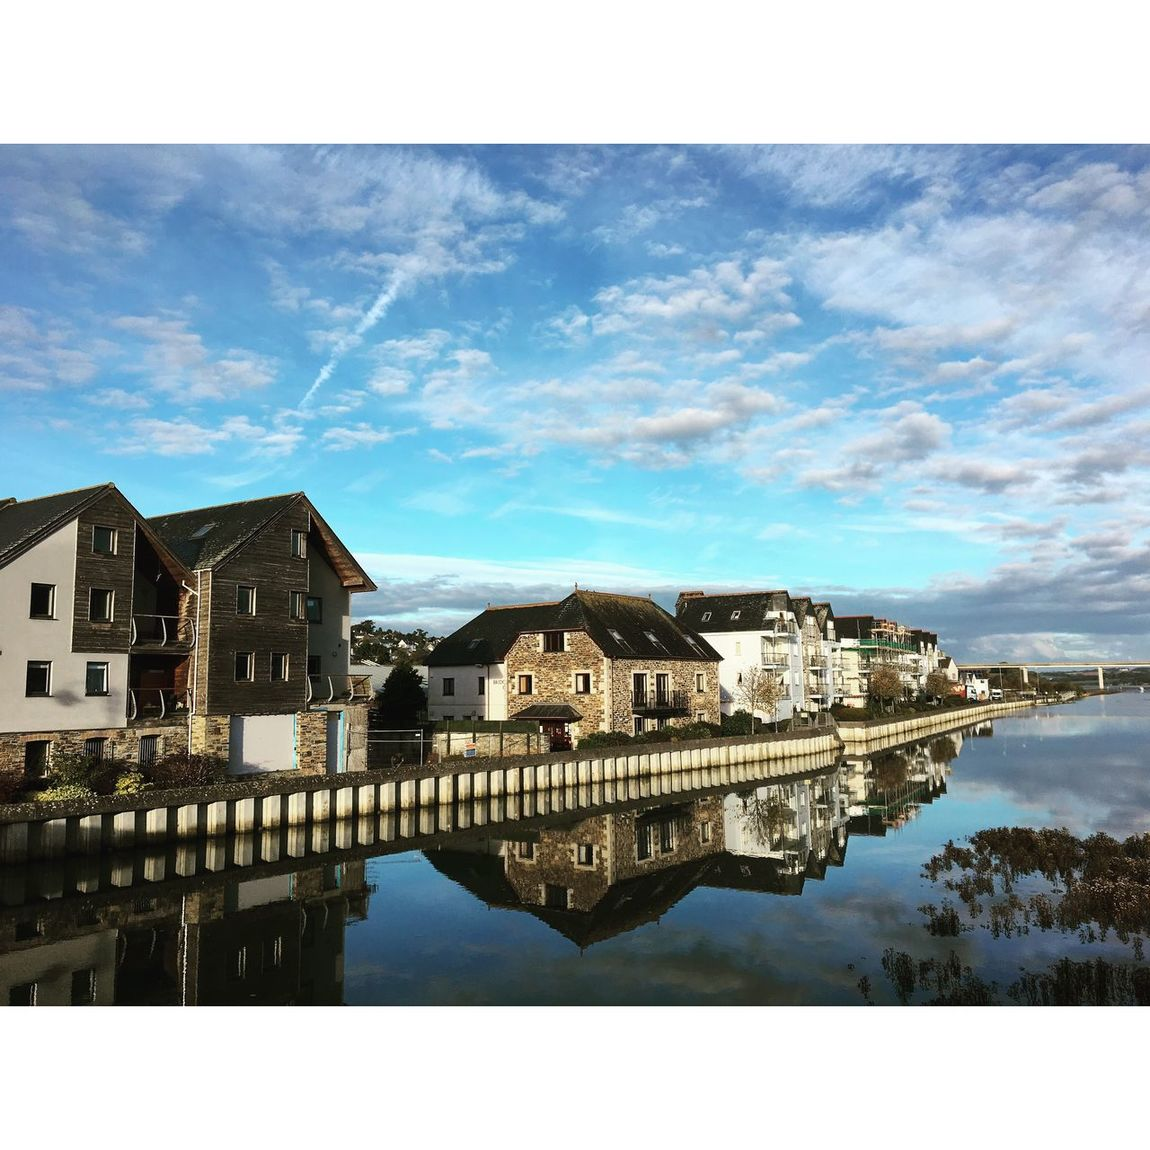 Architecture Built Structure Sky Building Exterior Water Waterfront Reflection No People Outdoors Beauty In Nature Day Nature Tree Cornwall Wadebridge Beautiful Tranquil Scene Travel Destinations Tranquility Cloud Cloud - Sky Amazing Solitude